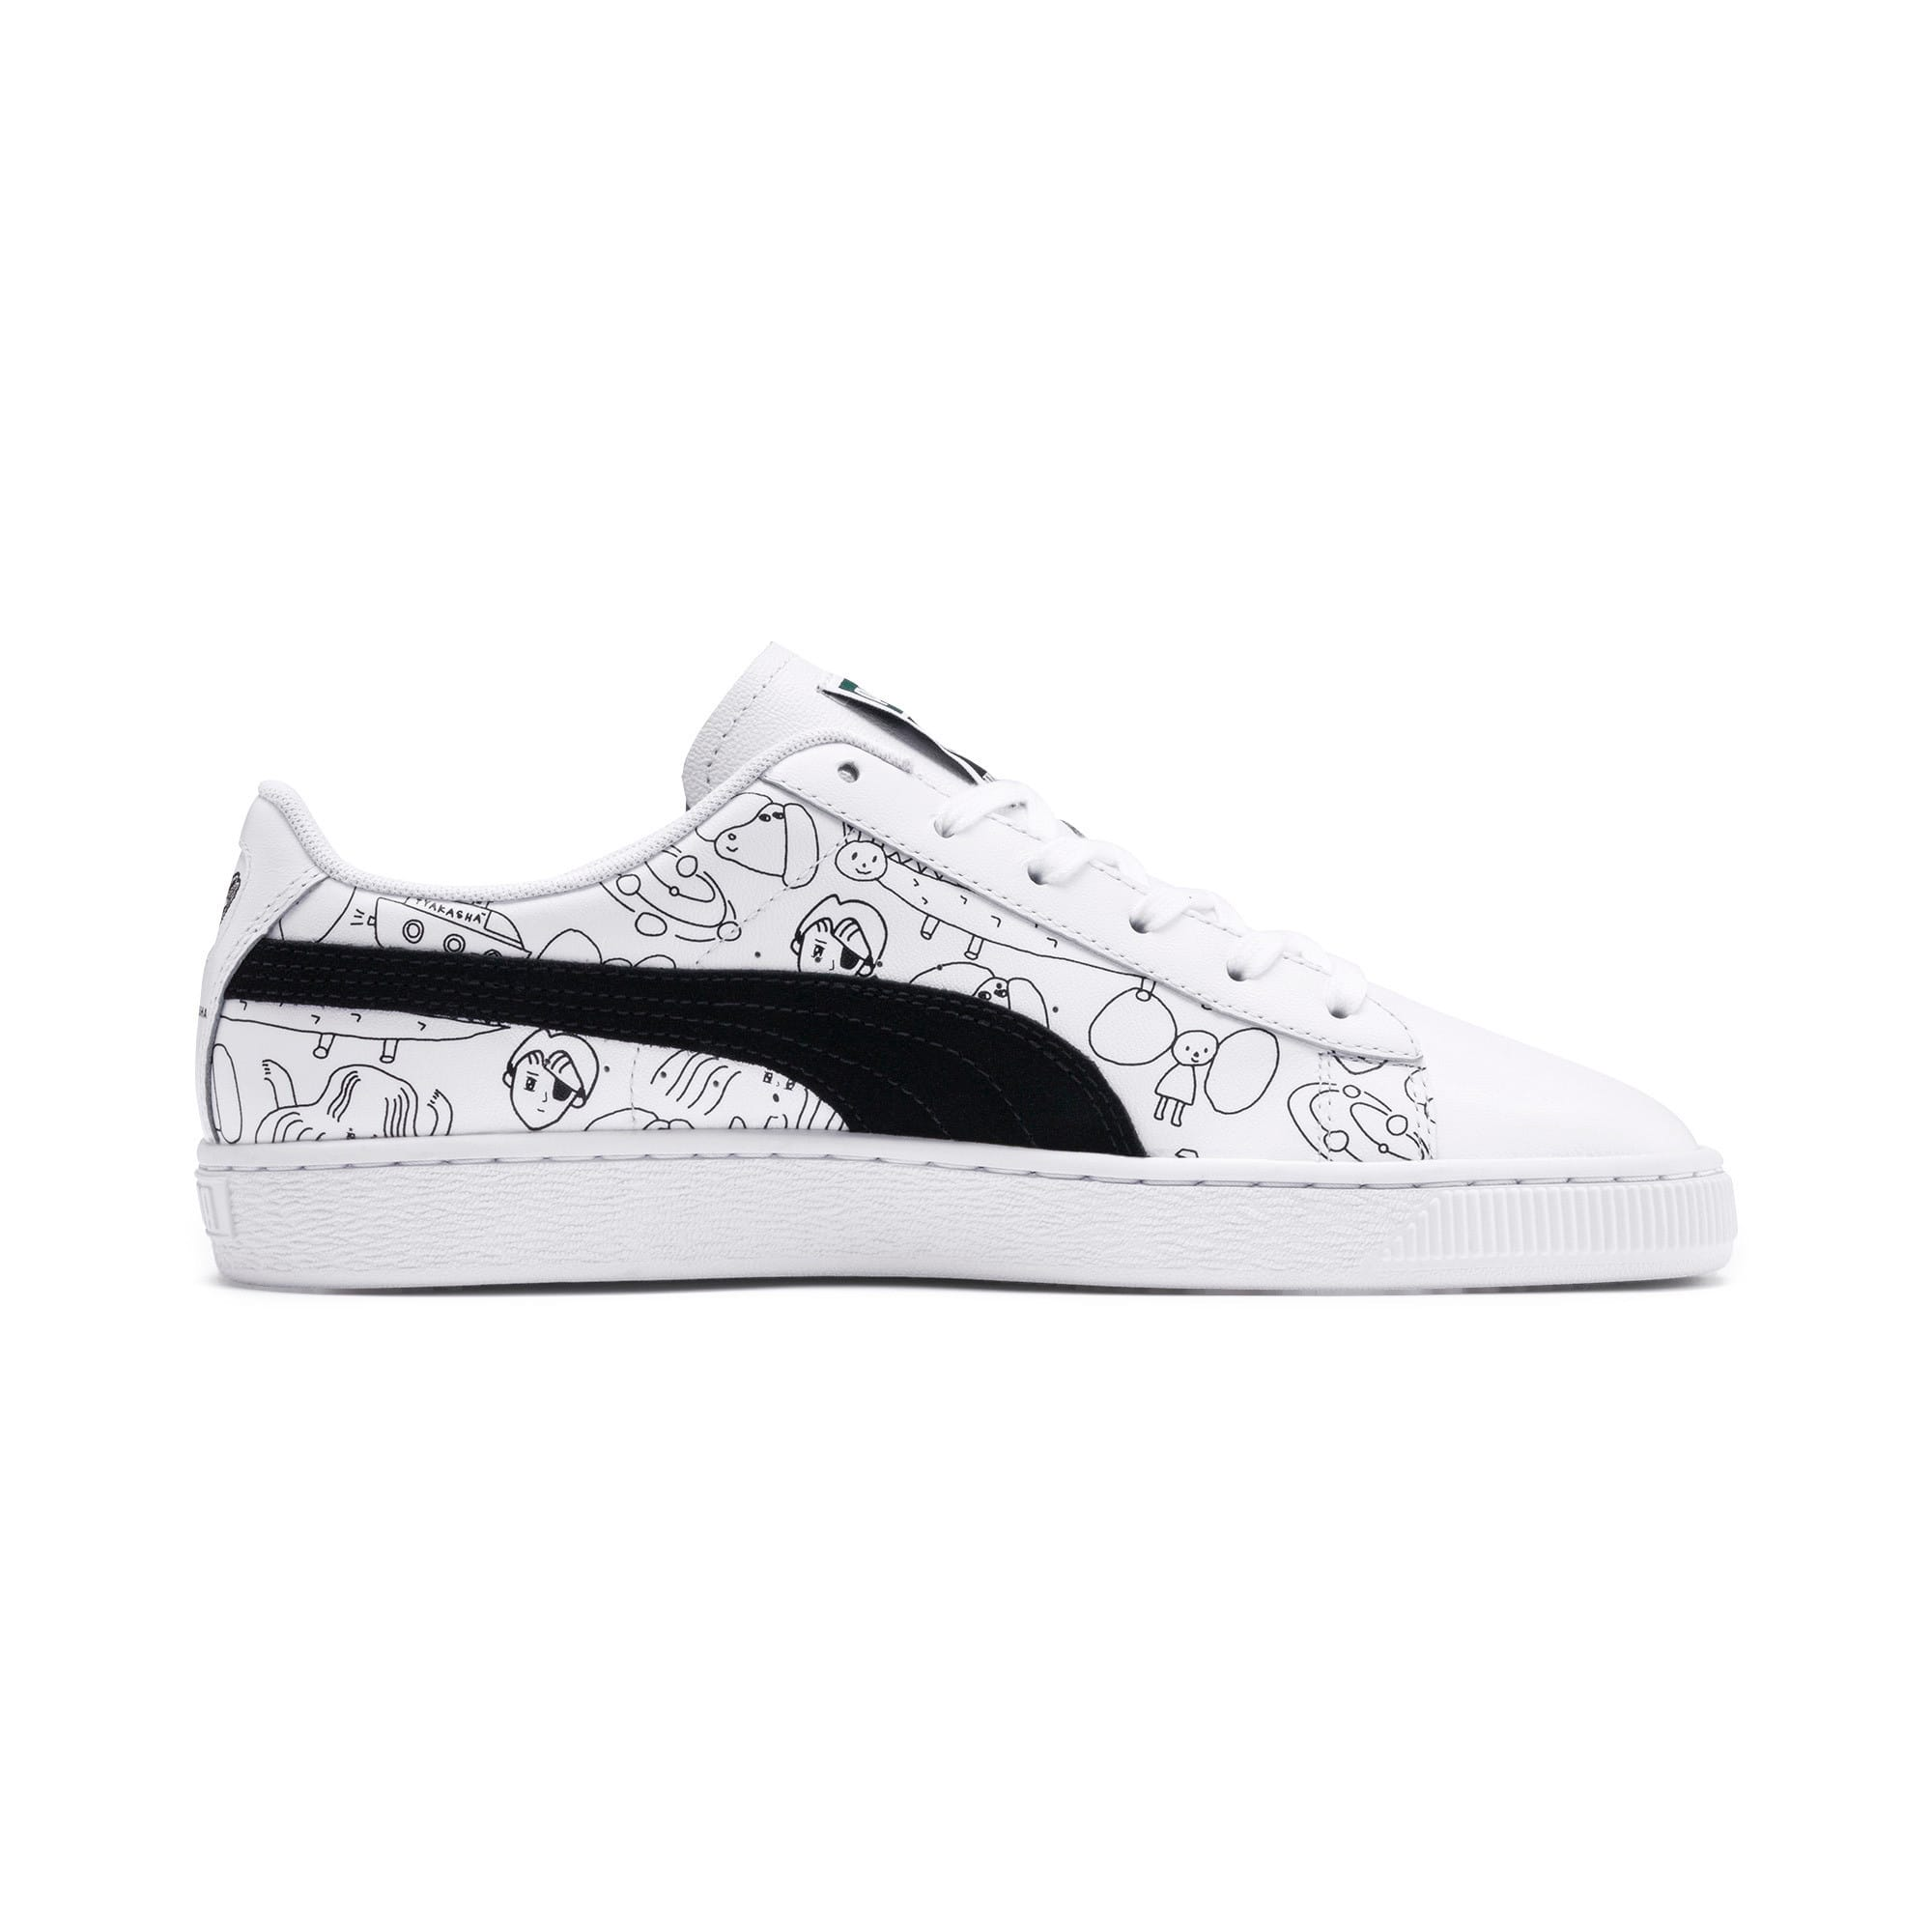 Thumbnail 7 of PUMA x TYAKASHA Basket Trainers, Puma White-Puma Black, medium